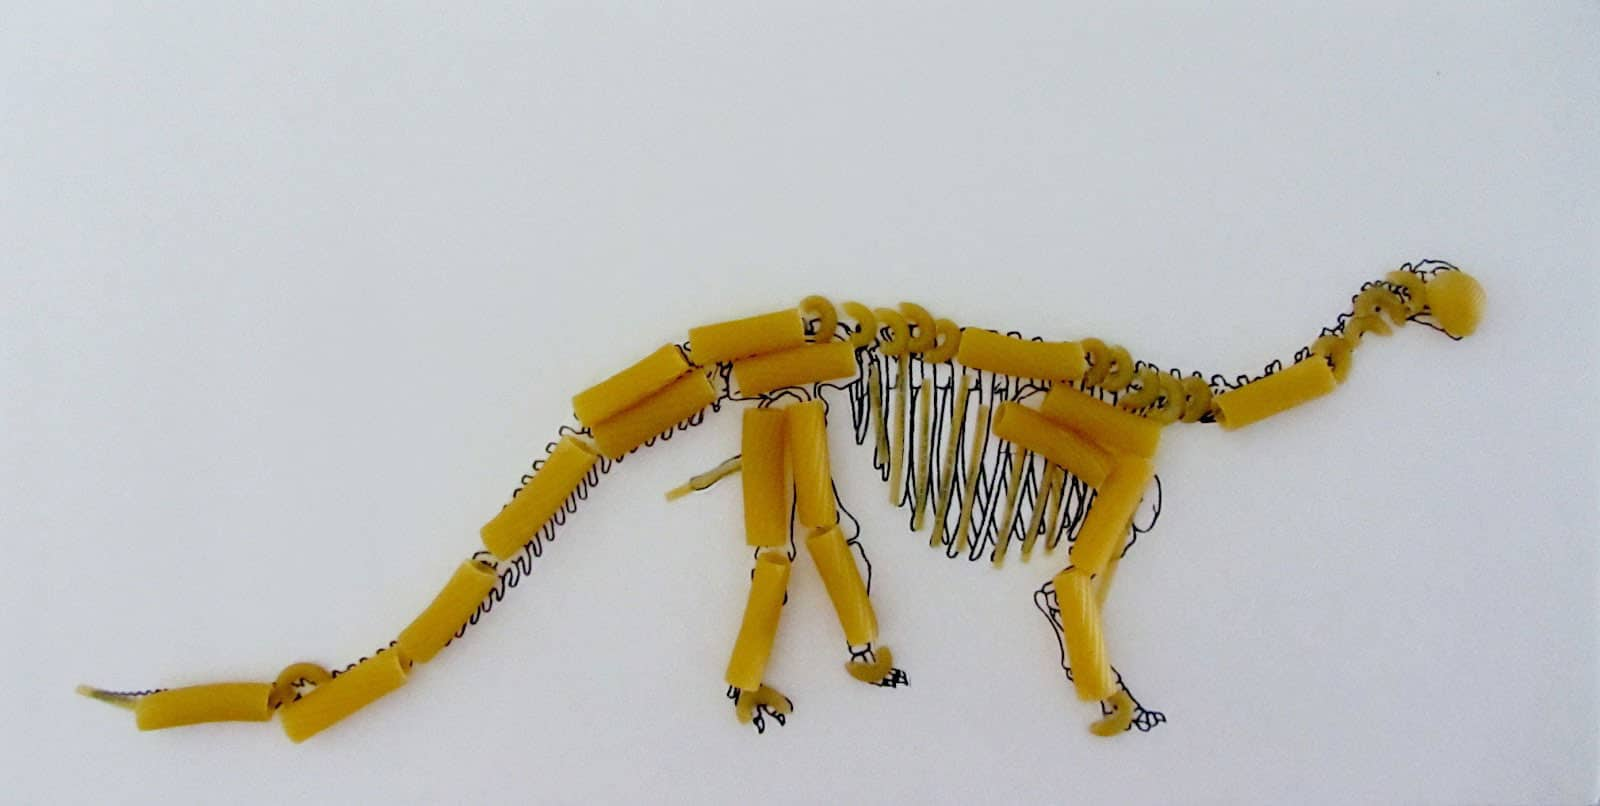 Dinosaur arts and crafts - Pasta Is Also Useful For Creating The Coolest Structures Animals And Even Skeletons Here Are 7 Creative Arts And Crafts Activities Using Pasta To Make And